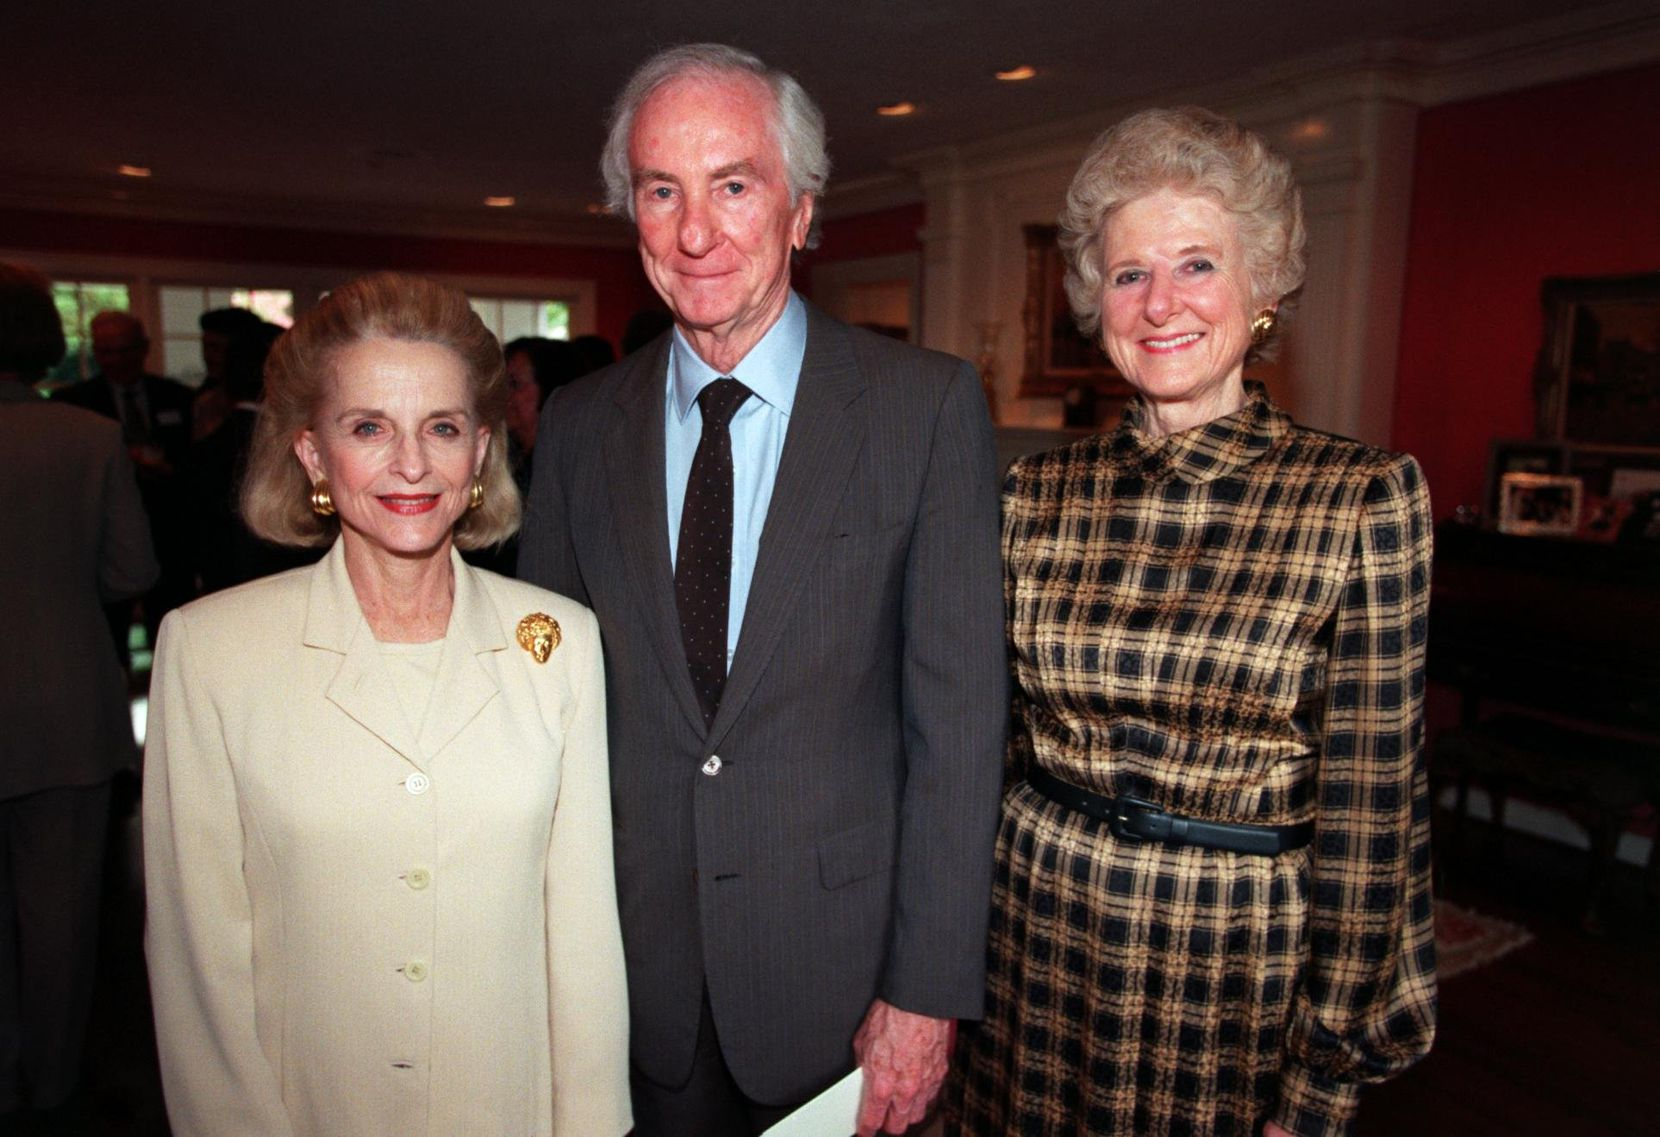 Left to right, Nancy Dedman, Peter O' Donnell and Edith O'Donnell at the Annual Fund Campaign for the 1998-99 Fort Worth Dallas Ballet reception at George and Carol Poston's home. Photographer: Allison V. Smith.